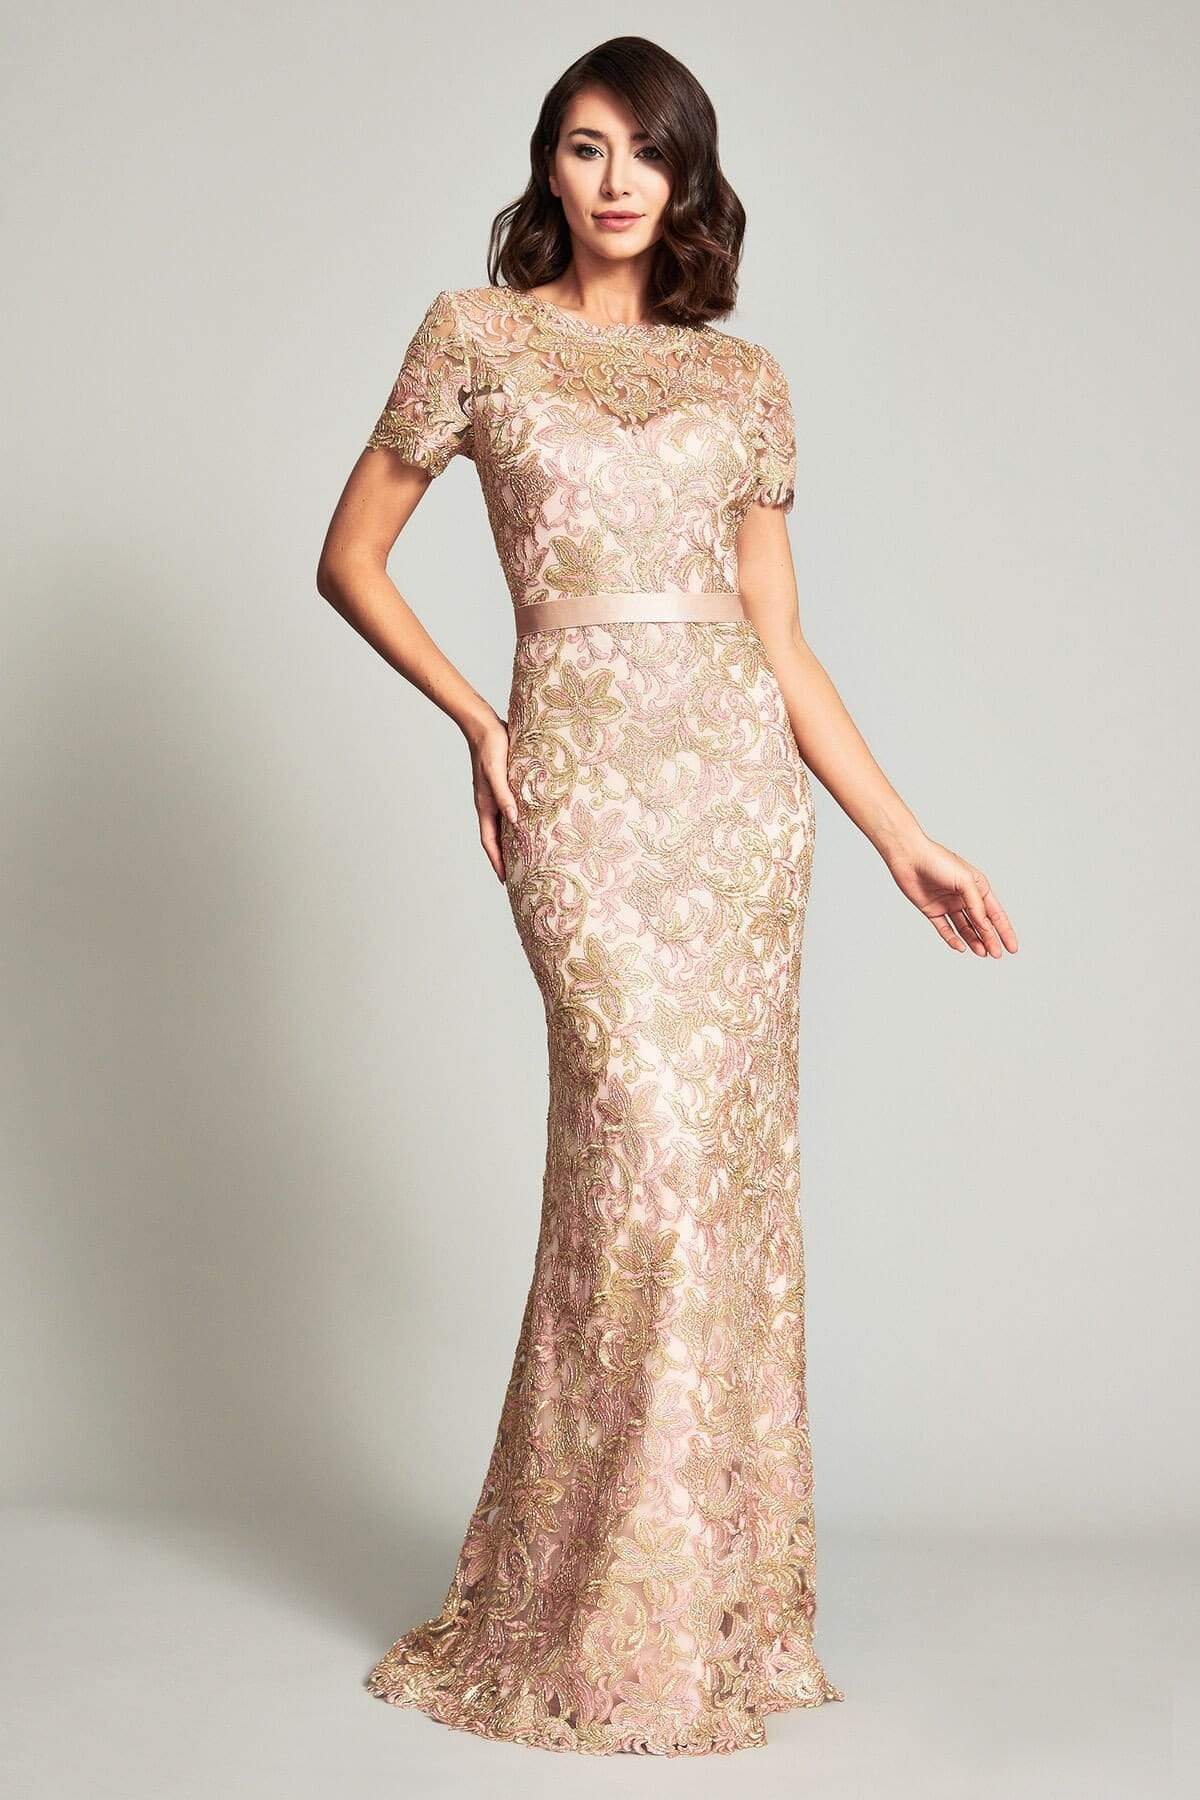 Tadashi Shoji - Caresse Short Sleeve Lace Sheath Dress In Gold